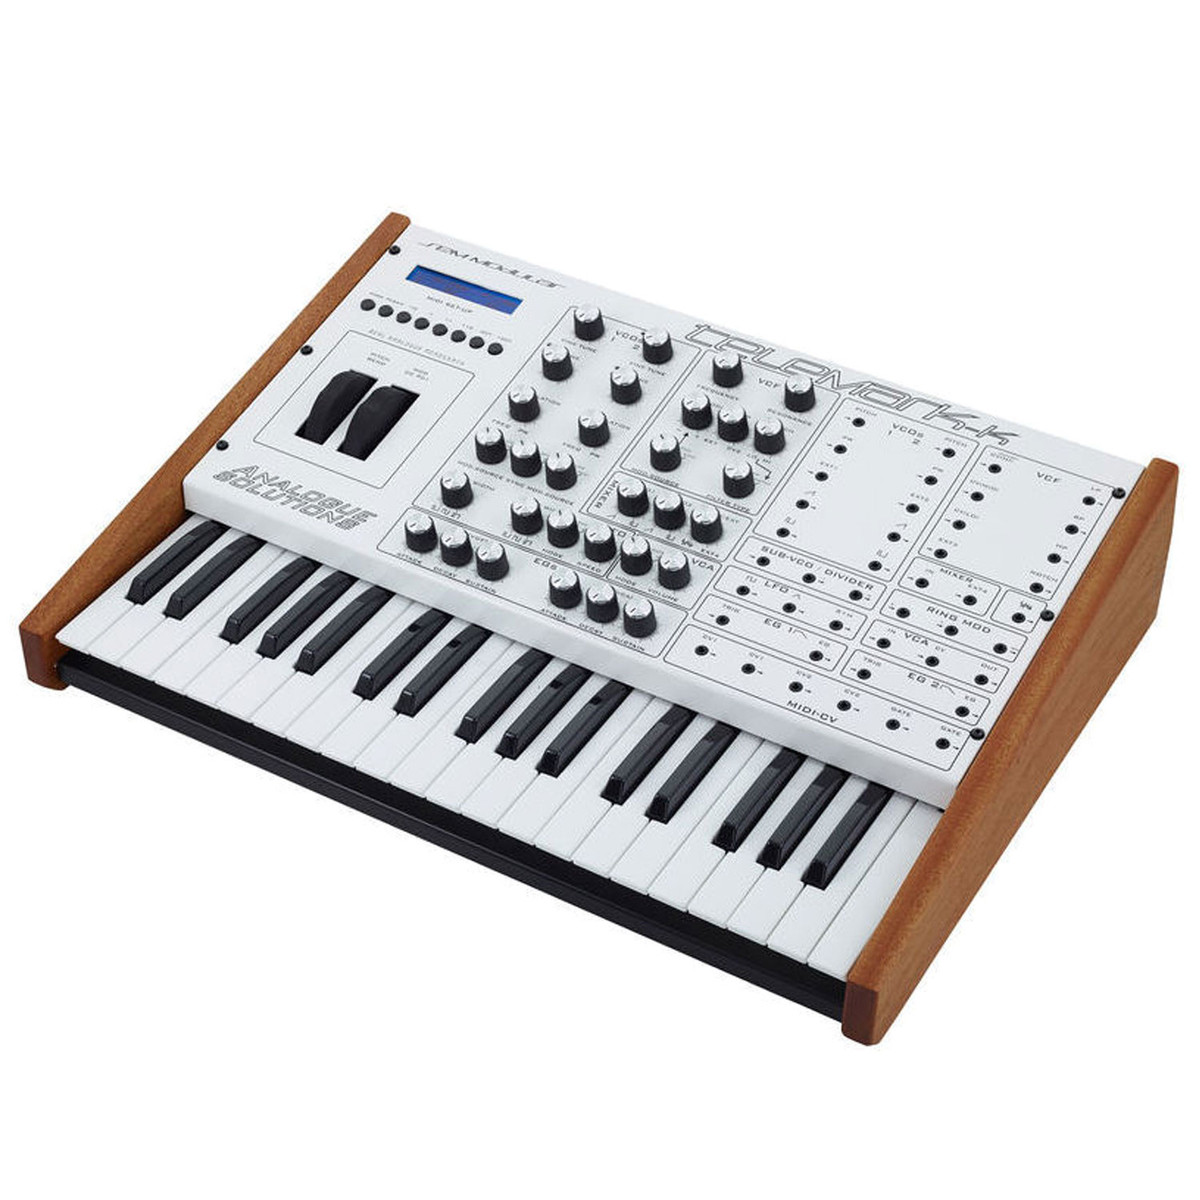 analogue solutions telemark k synthesizer keyboard at gear4music. Black Bedroom Furniture Sets. Home Design Ideas